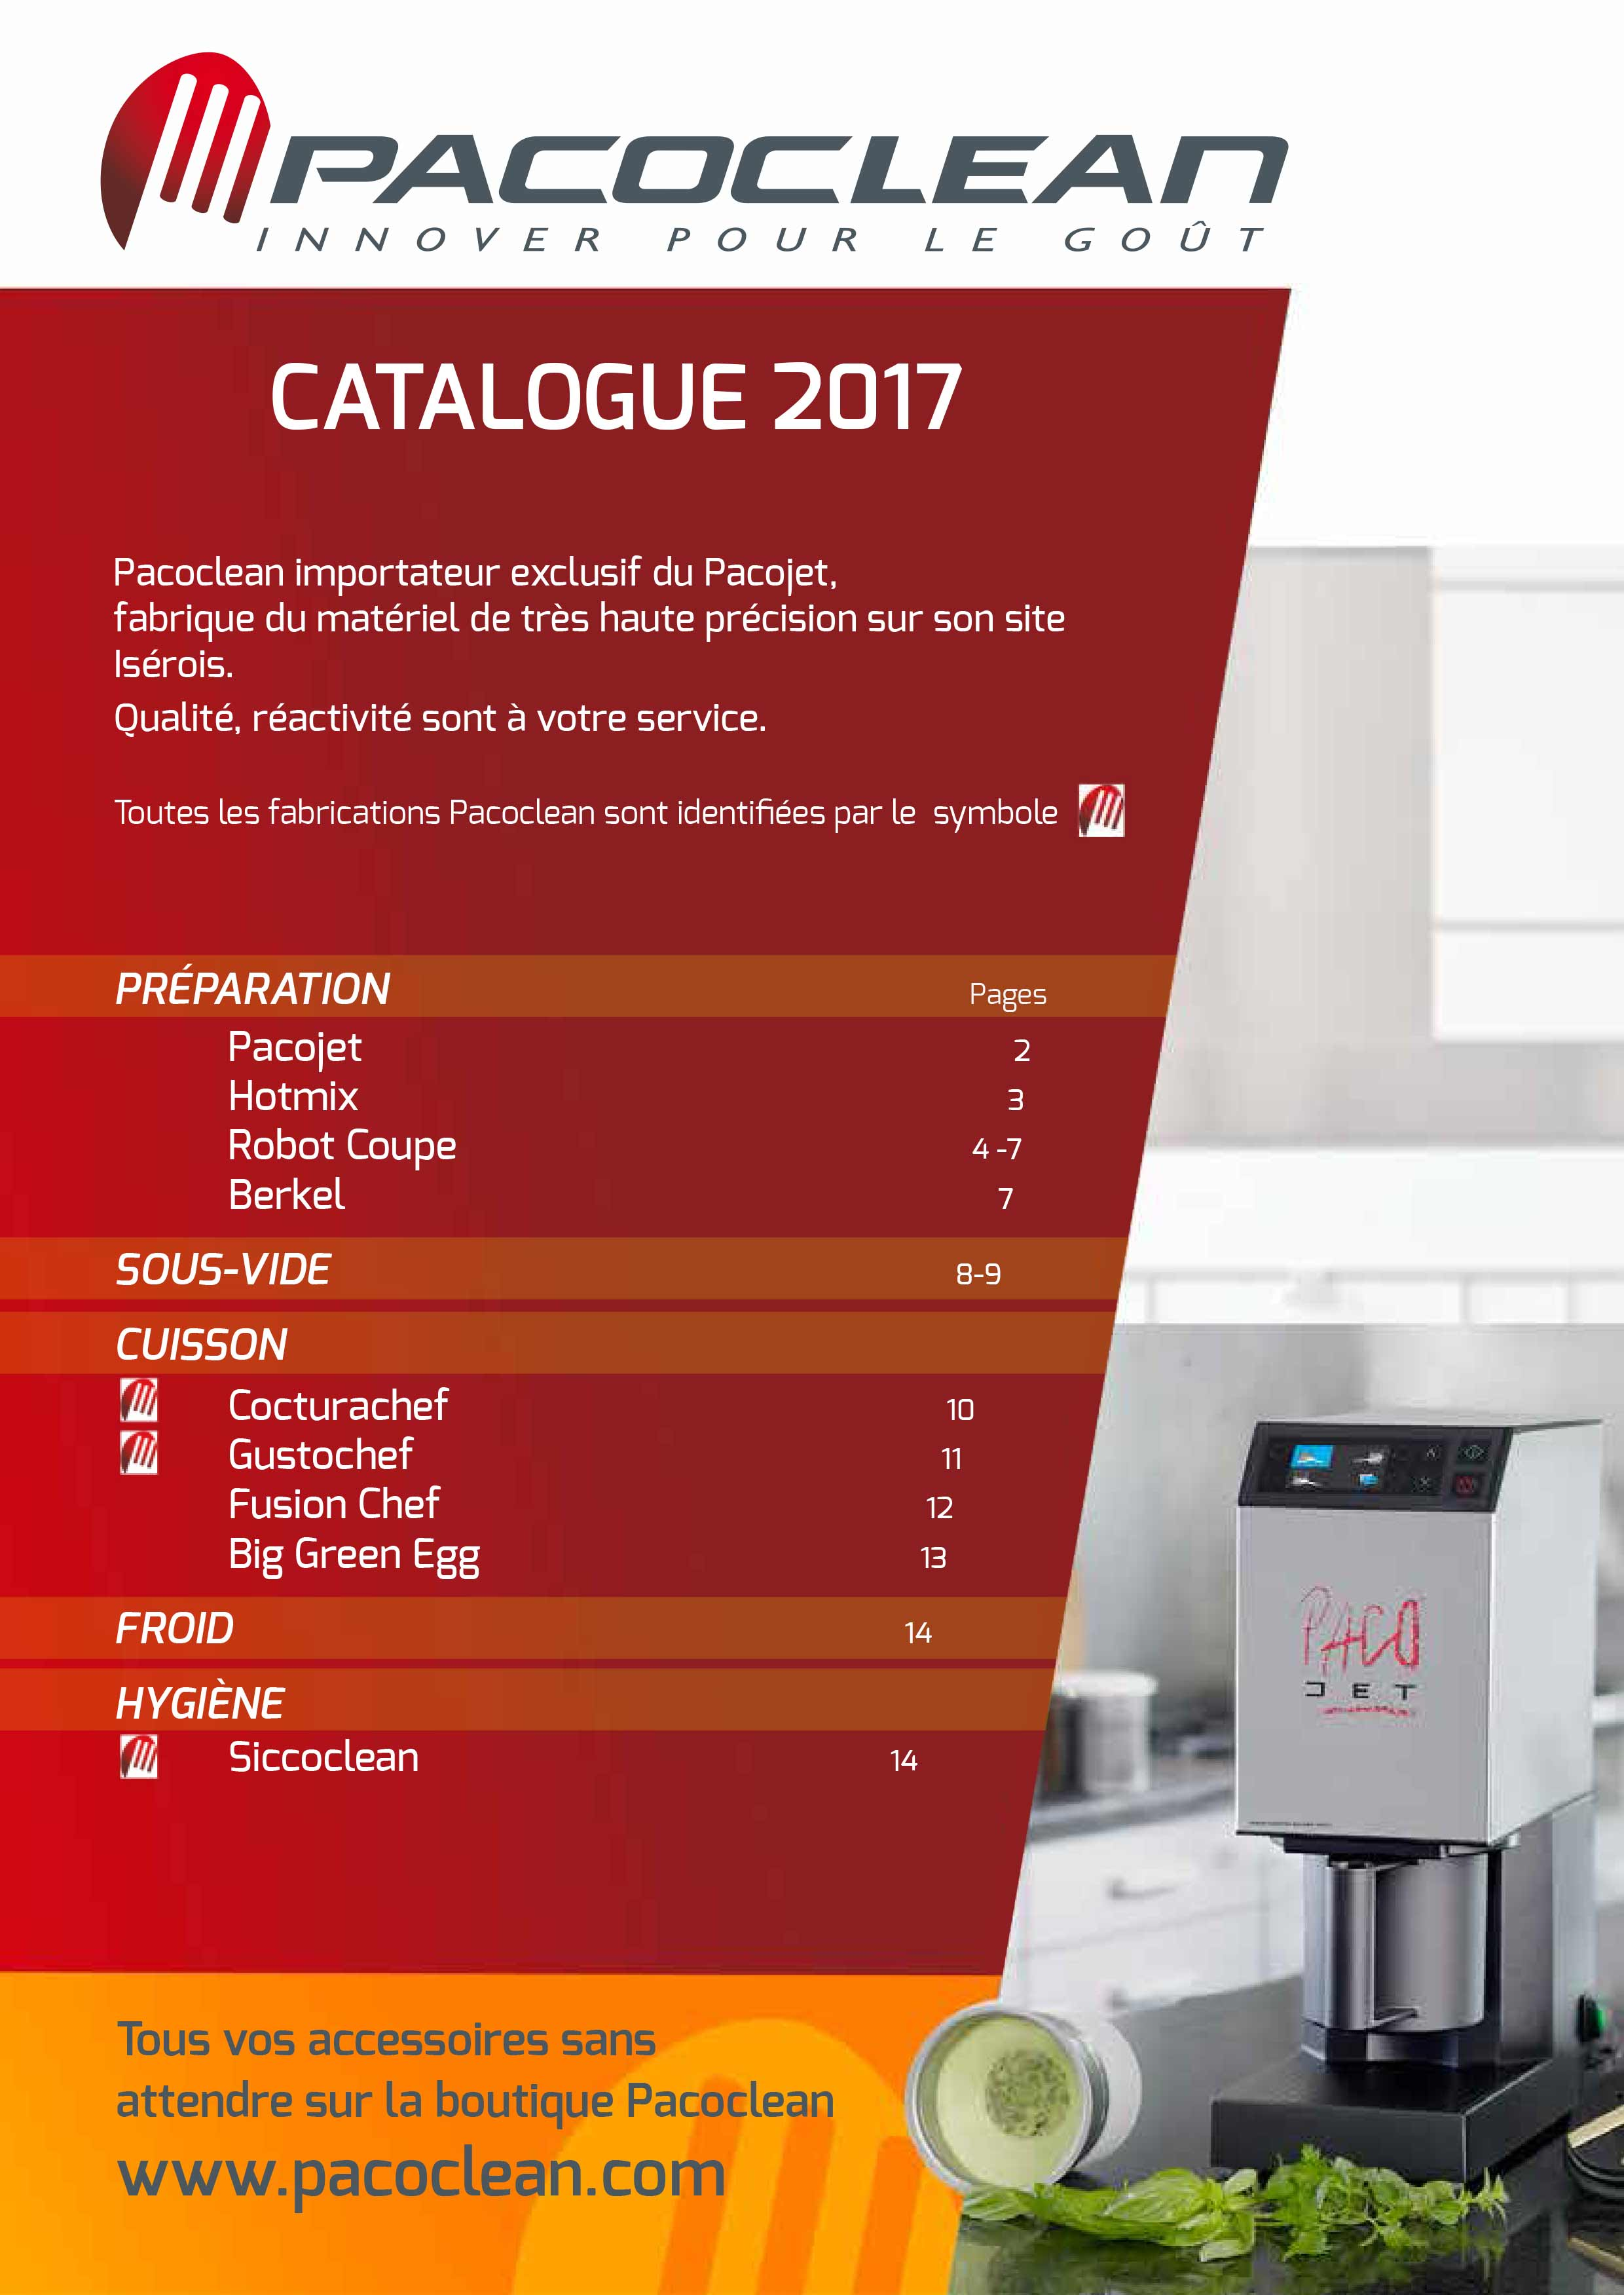 Pacoclean Catalogue 2017 une